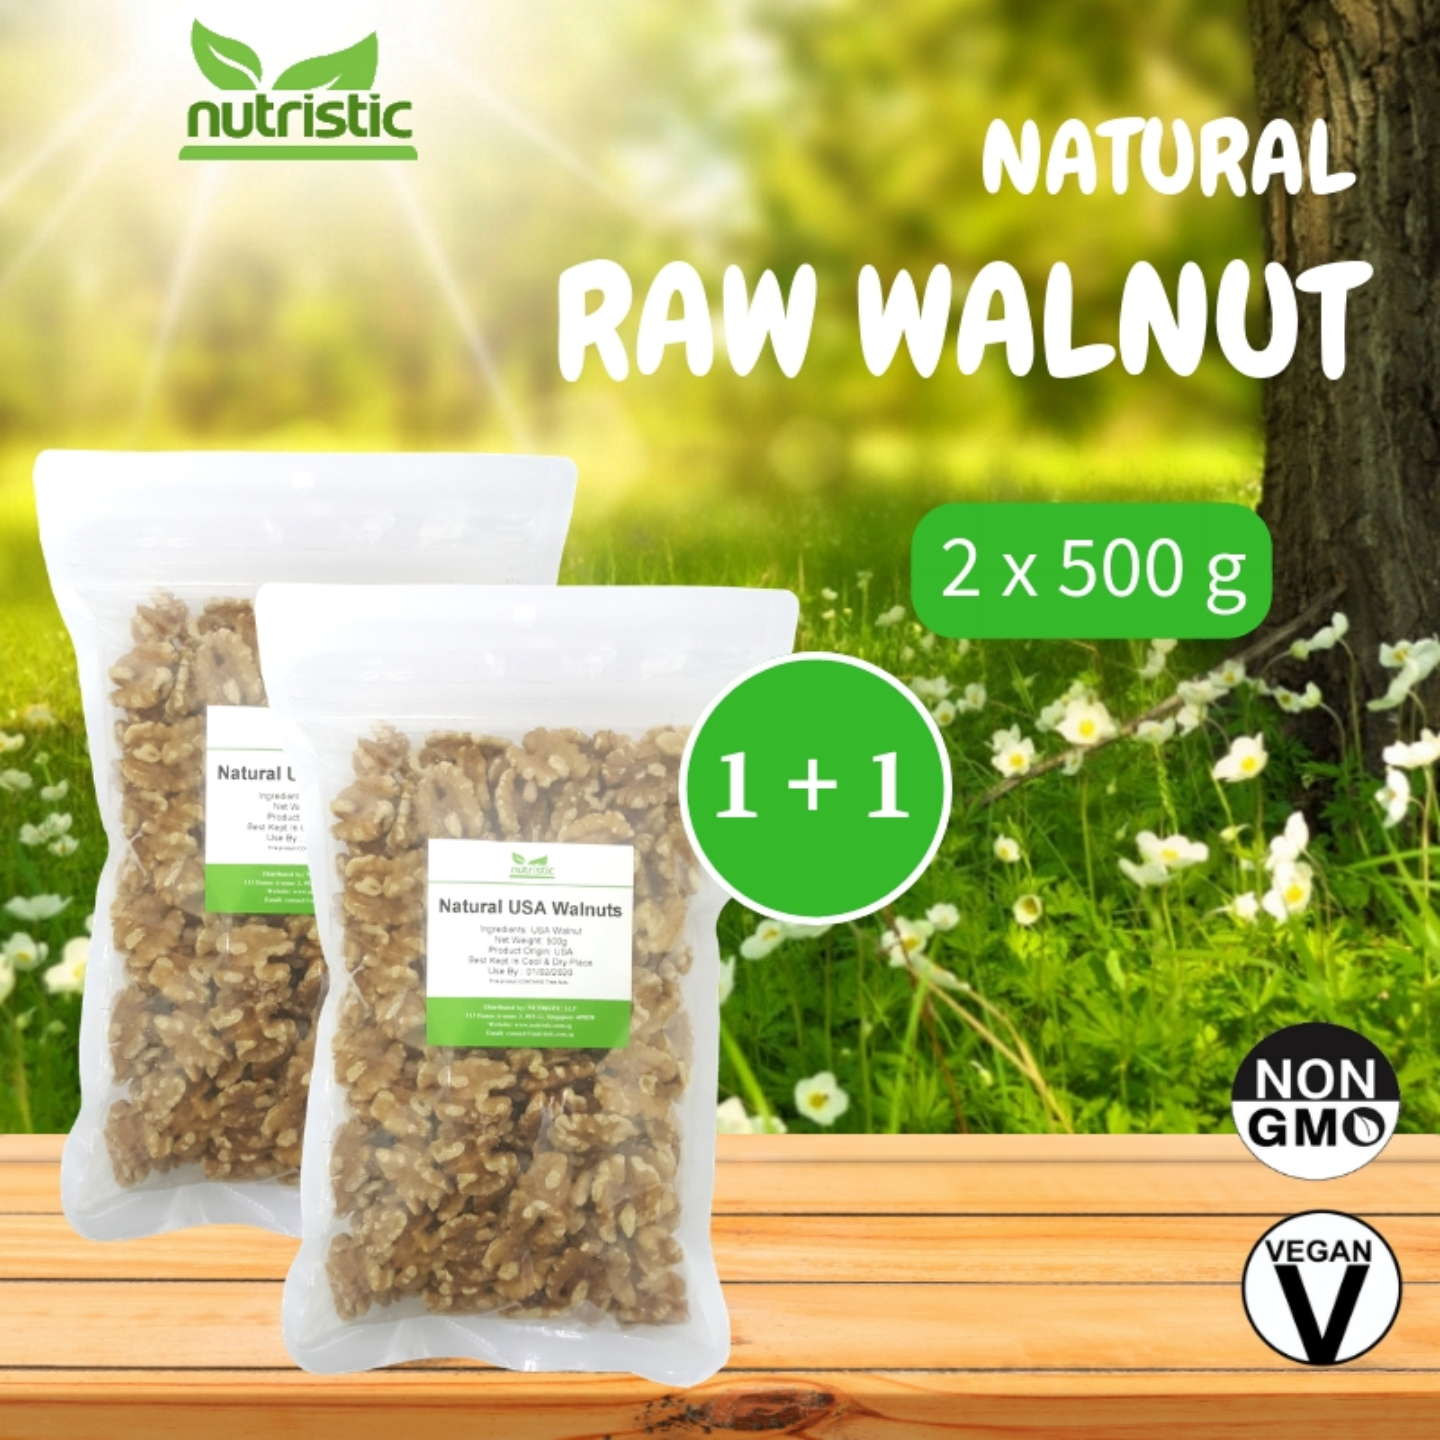 Natural Raw Walnut 500g x2 - Value Bundle 1+1